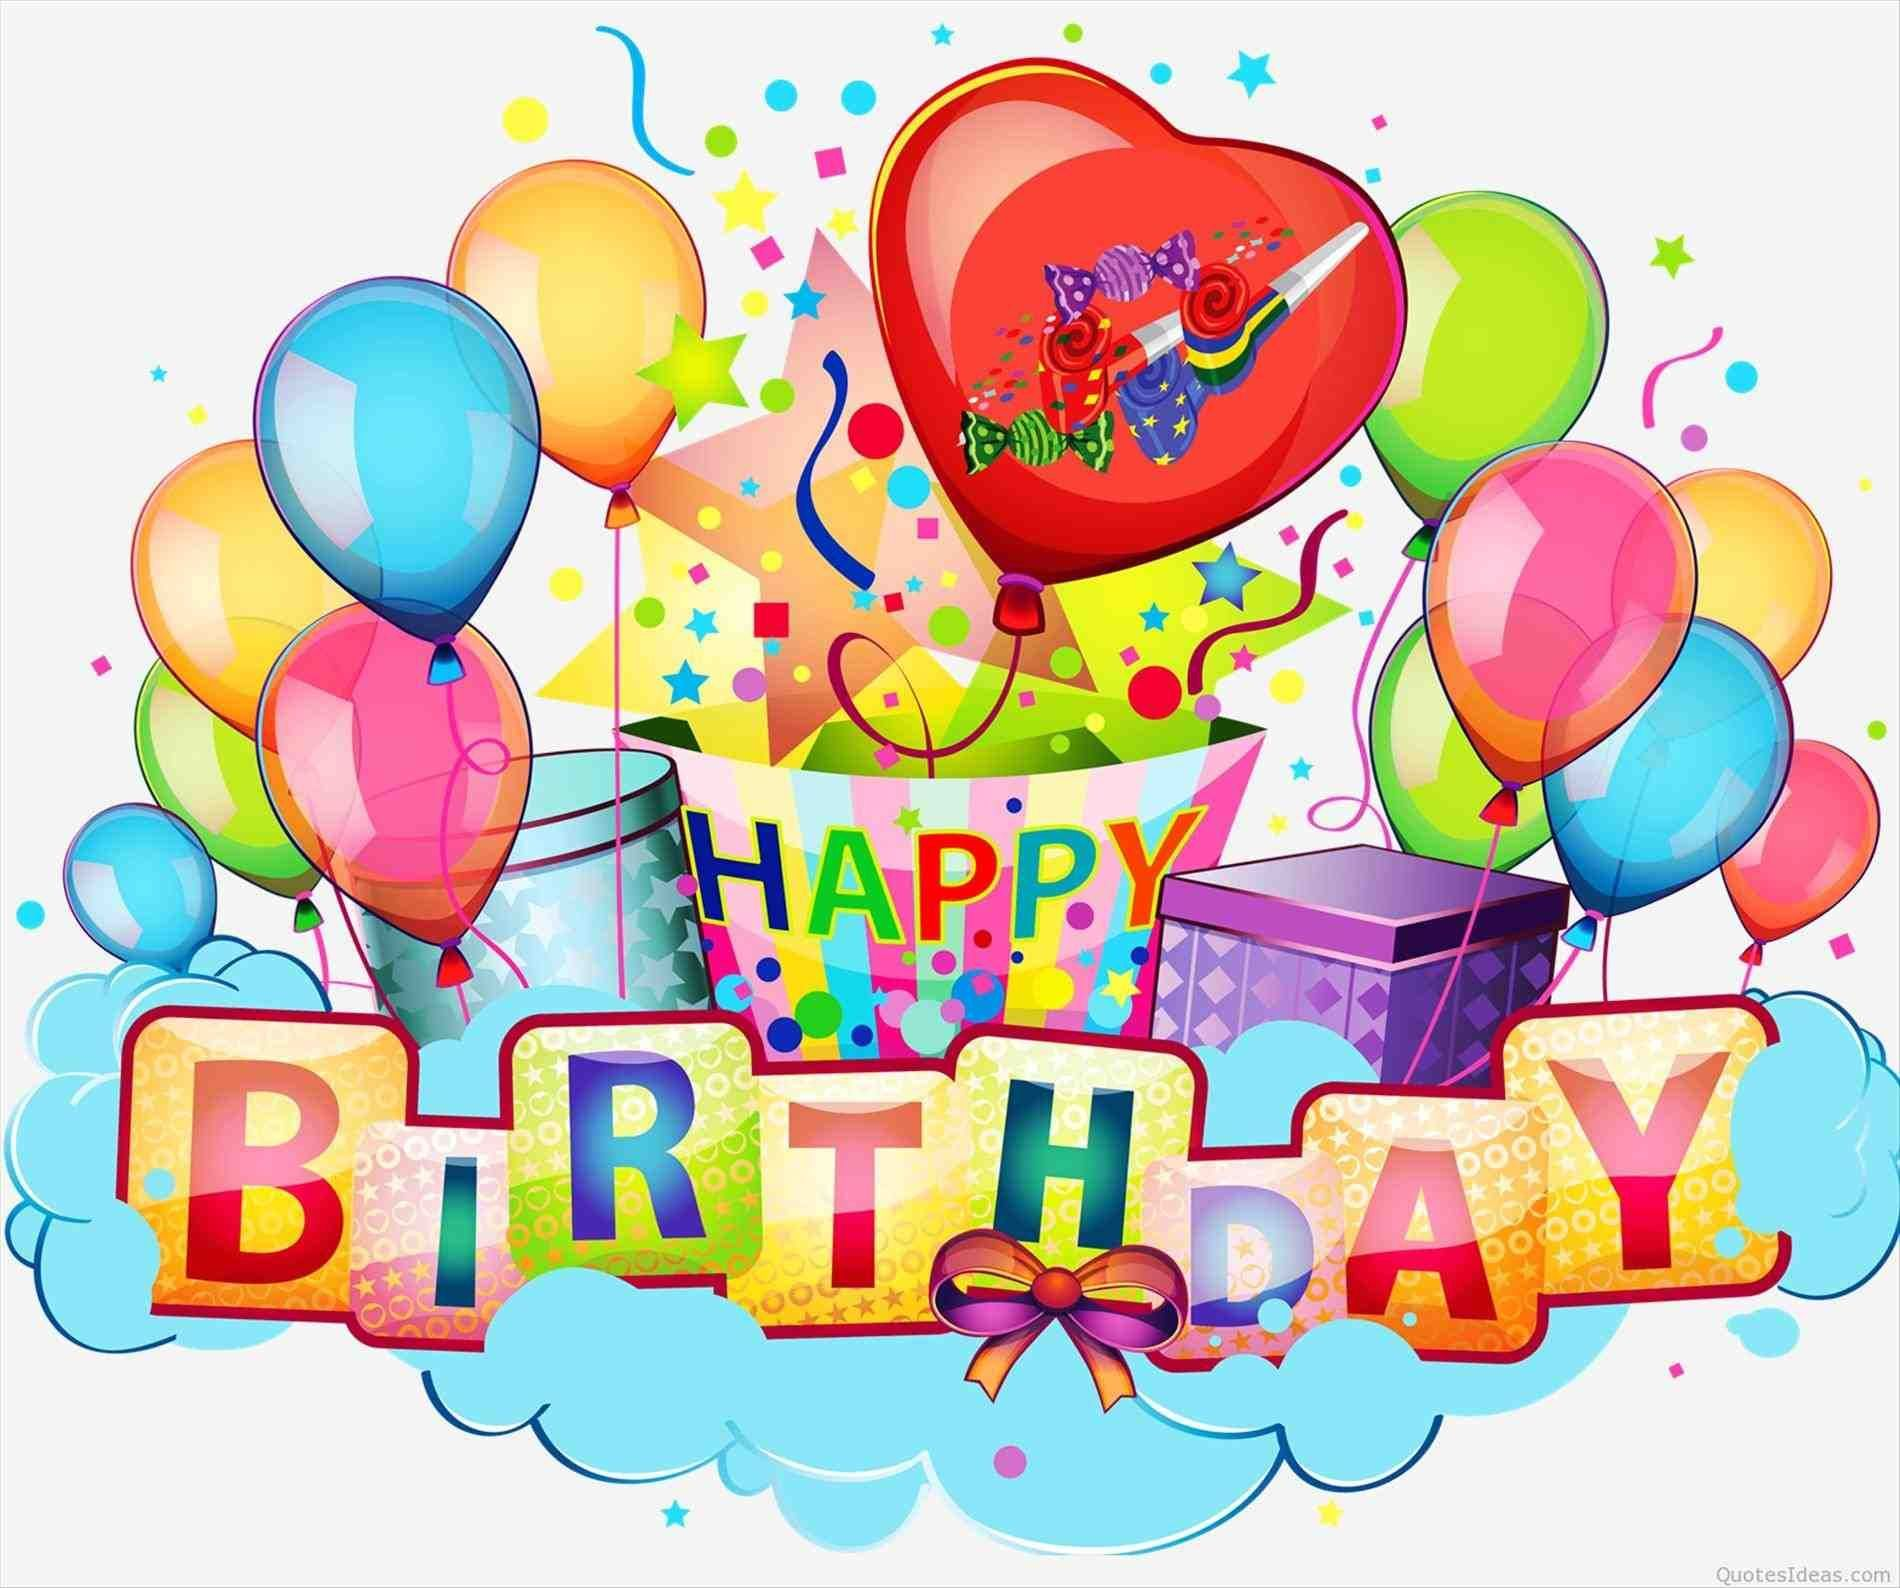 8 Best Picture Free Card Birthday Online Happy Birthday Cards Animated Birthday Cards Happy Birthday Cards Online